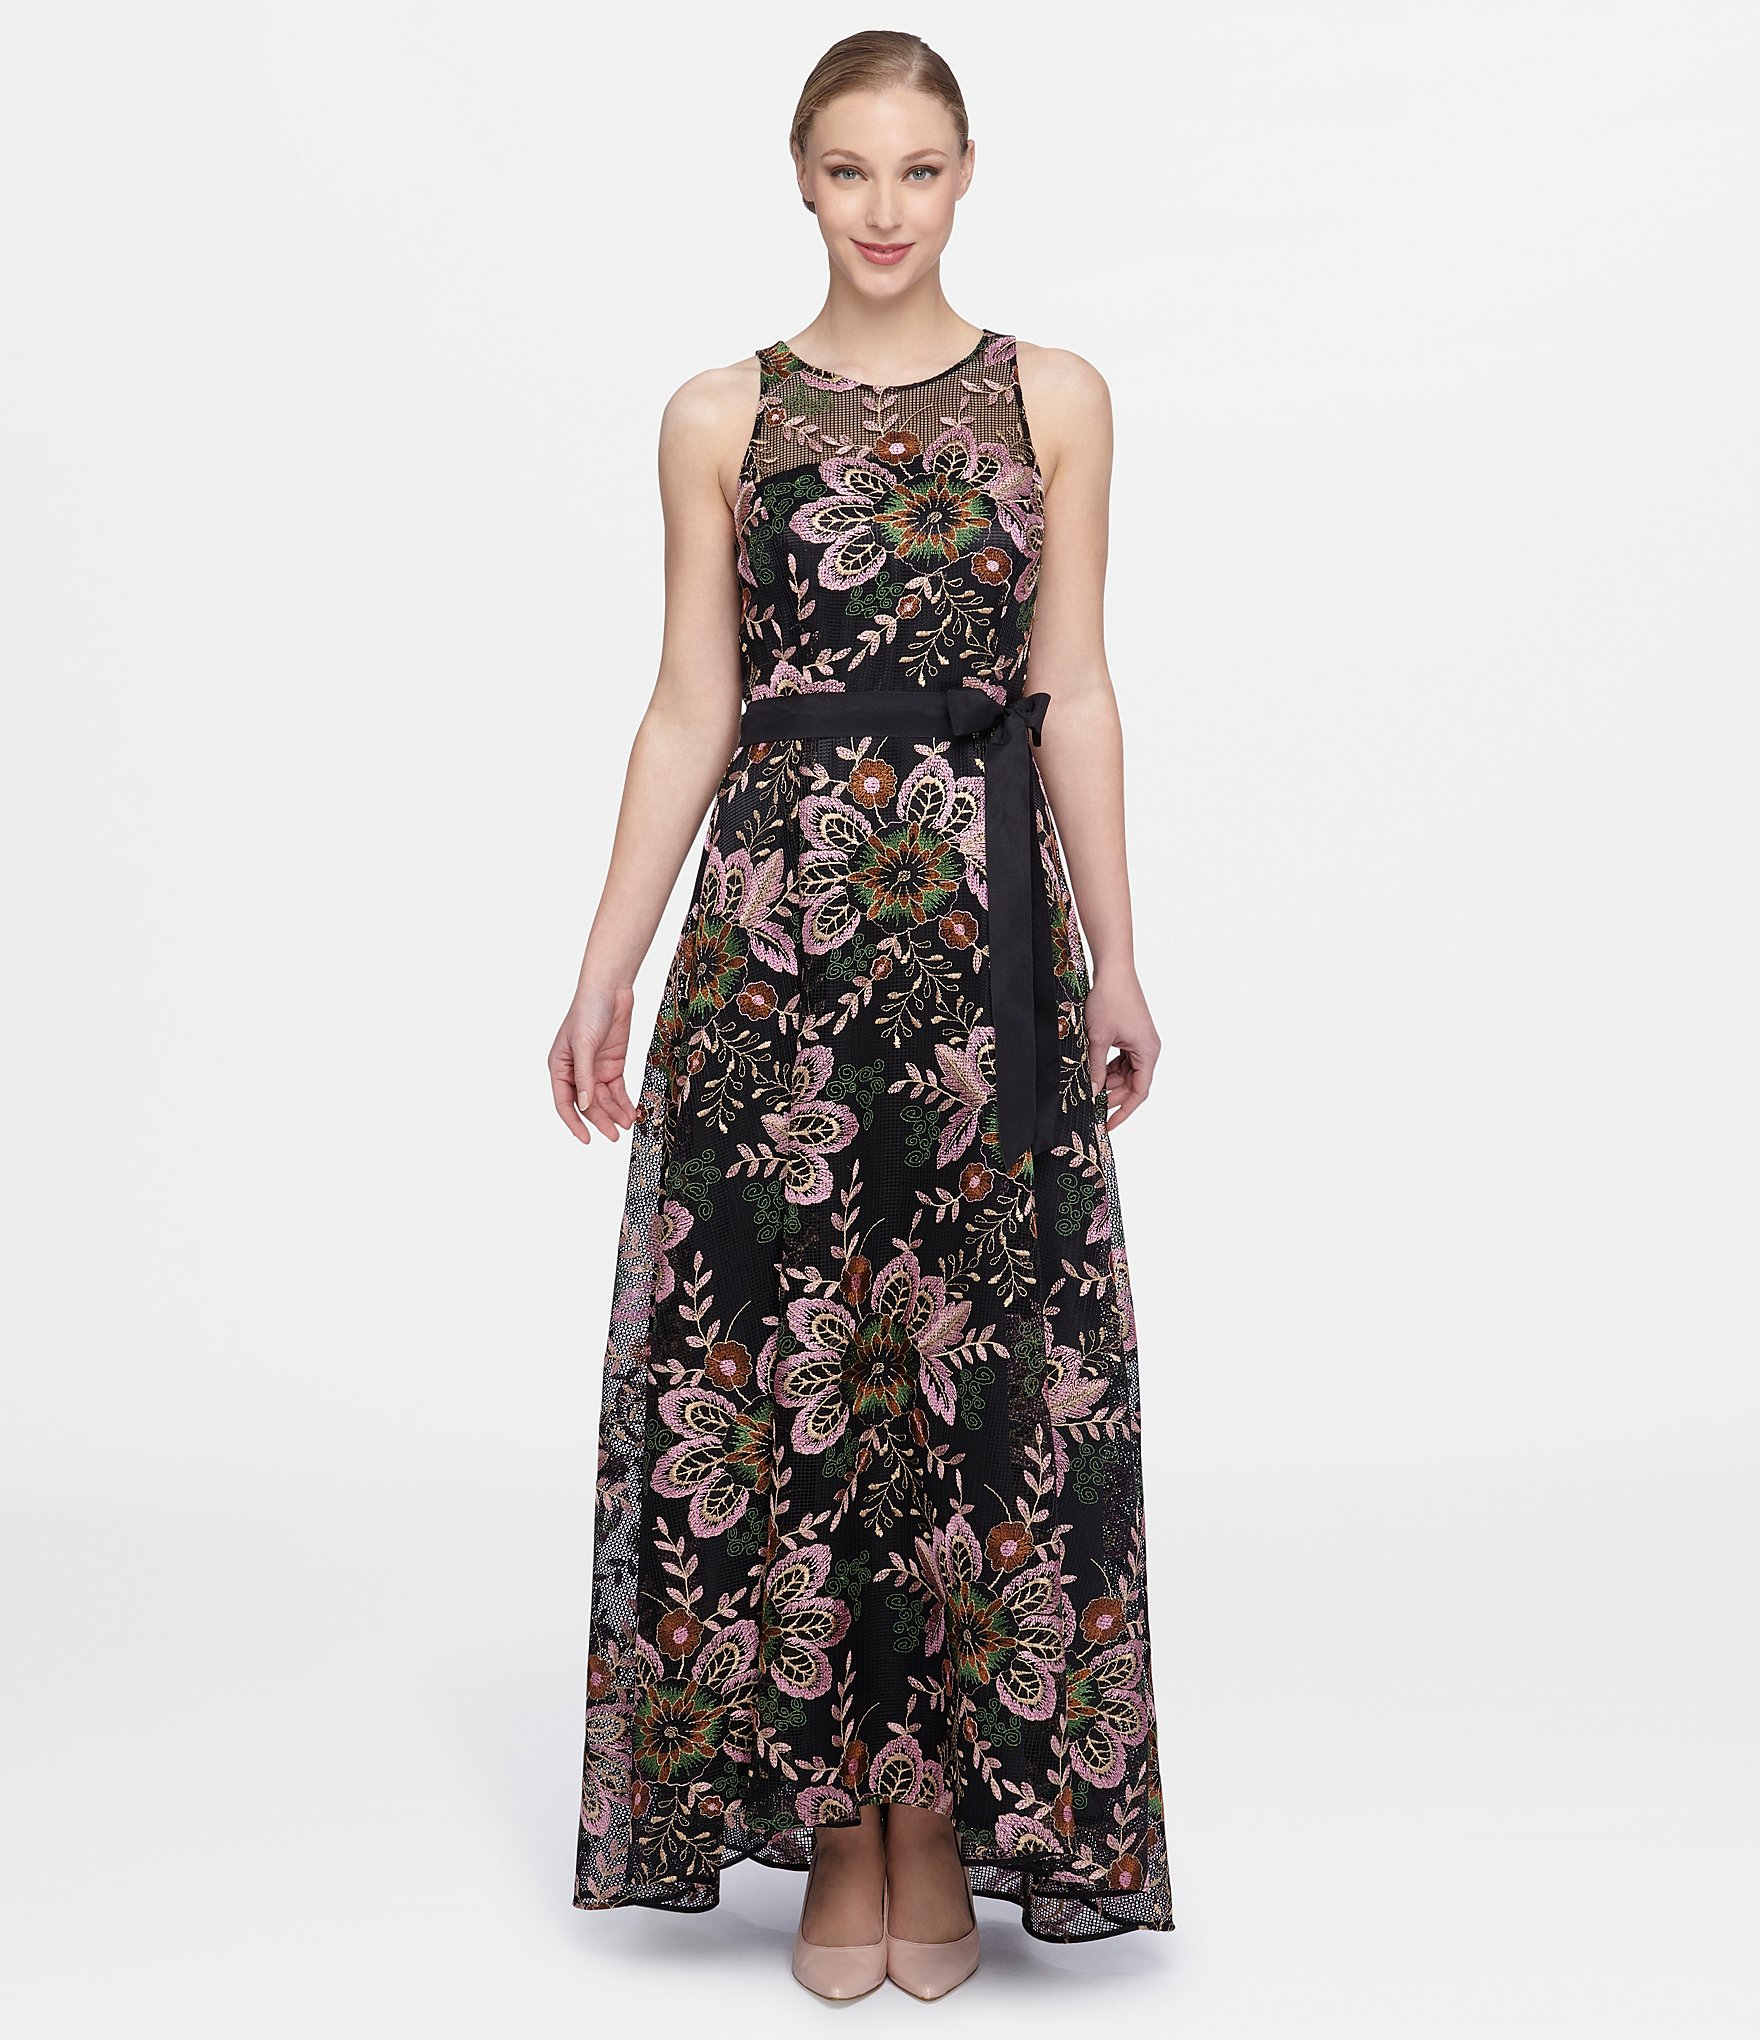 Lyst - Tahari Floral Embroidered A-line Gown in Black